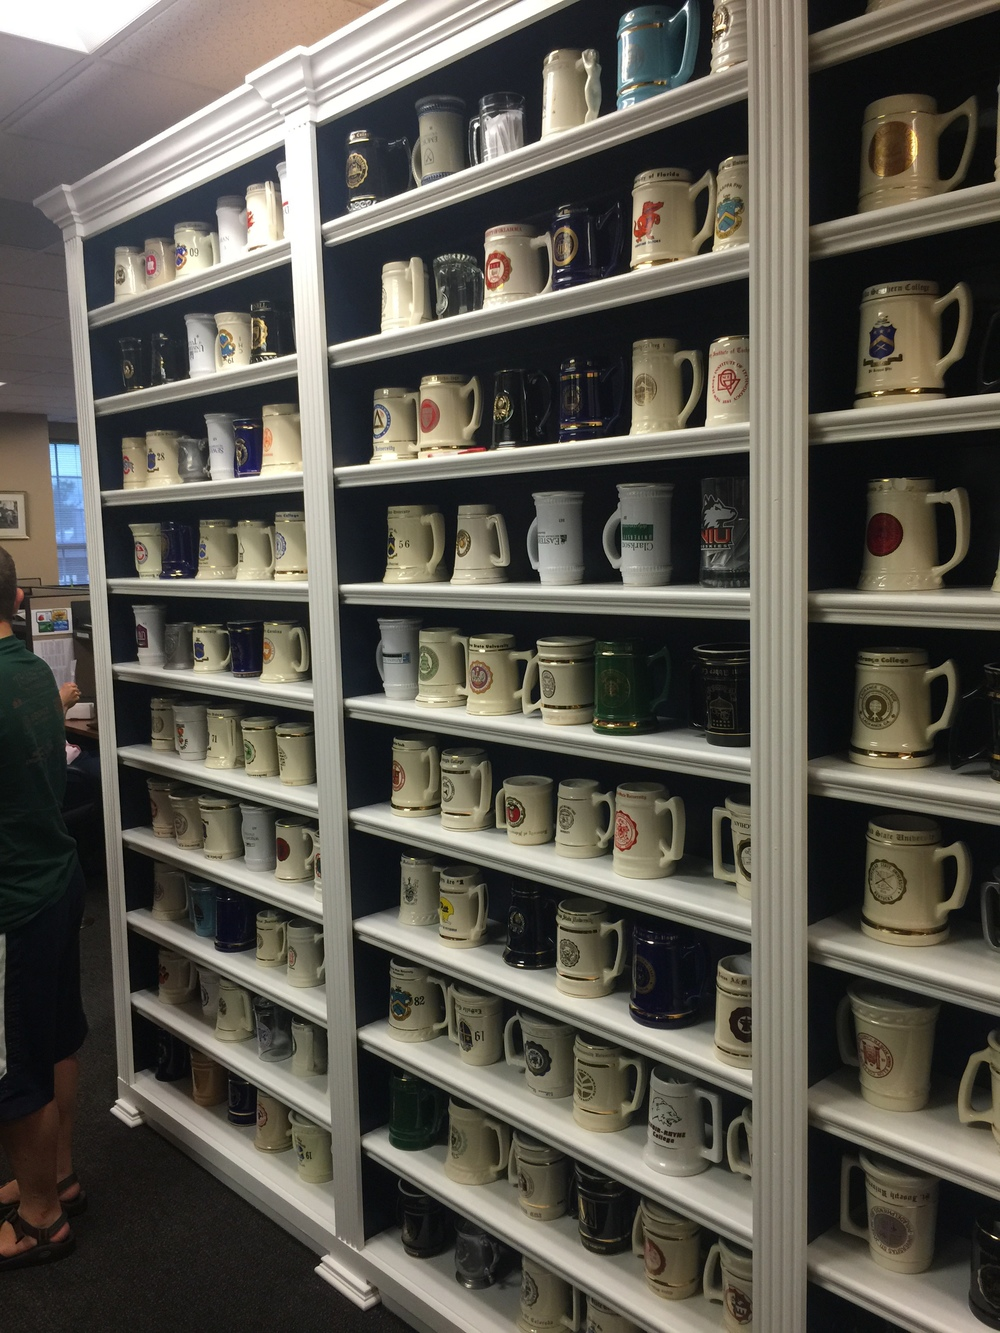 The Mug Wall, there is a mug from every university that has a Pi Kapp chapter at it. If the mug is right side up the chapter is open, if it is upside down it is closed. When you visit you can write a note and put it in your mug.